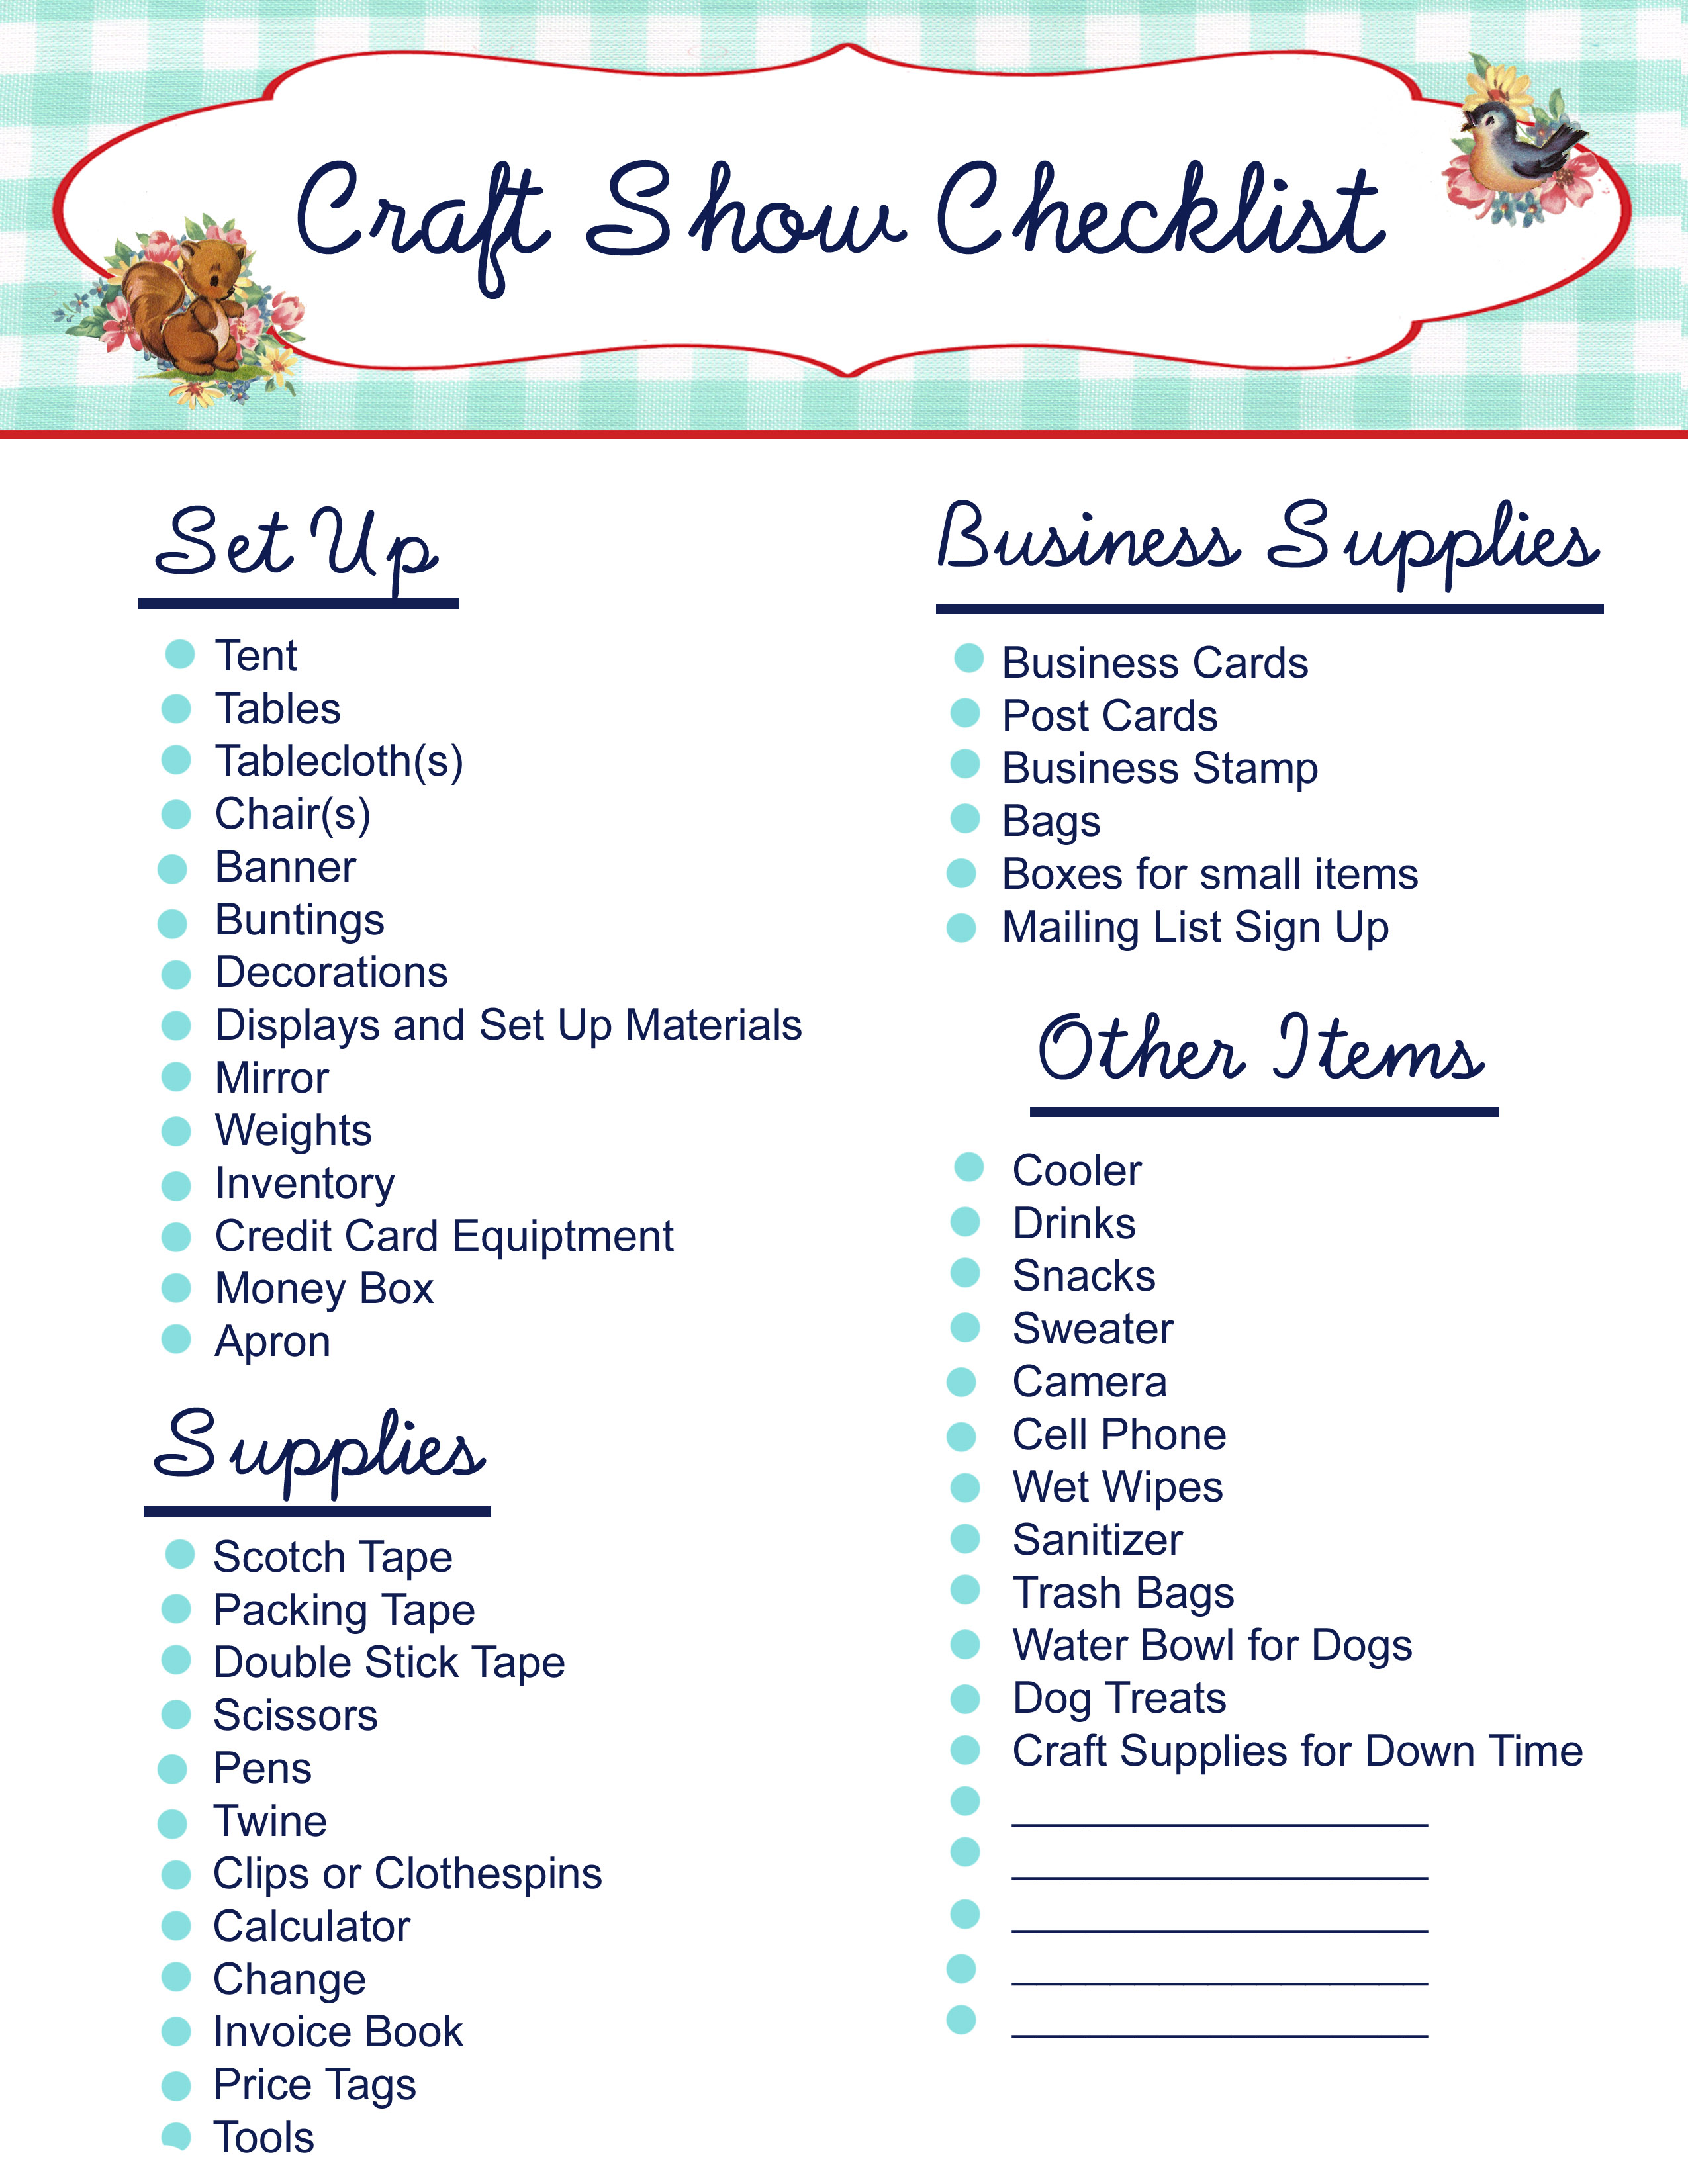 Free Printable Craft Show Checklist My So Called Crafty